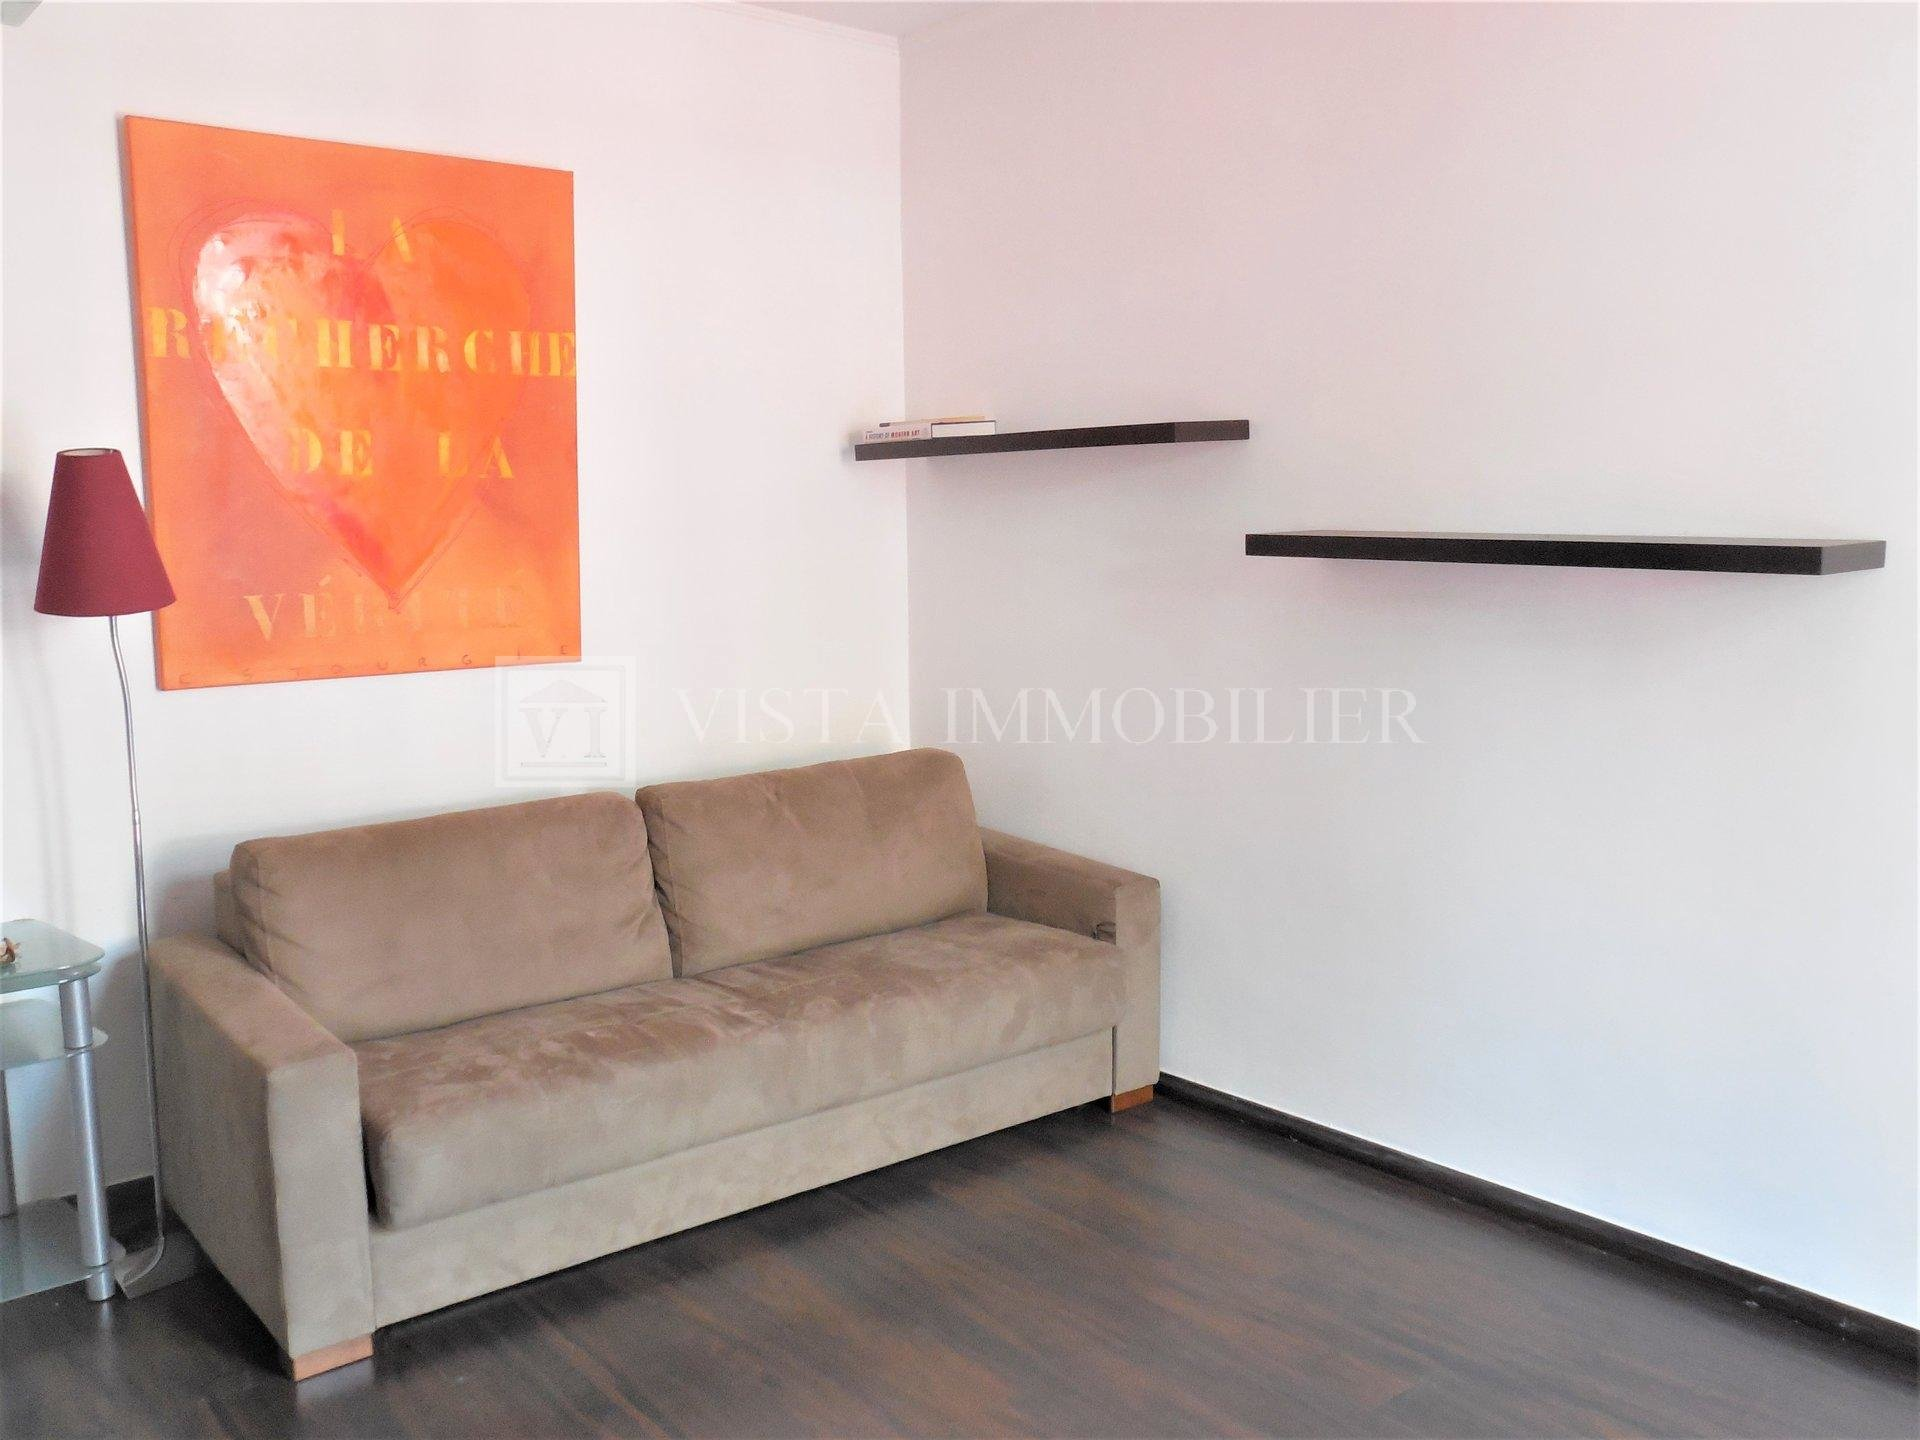 RCM/MONACO ONE BEDROOM APPARTEMENT